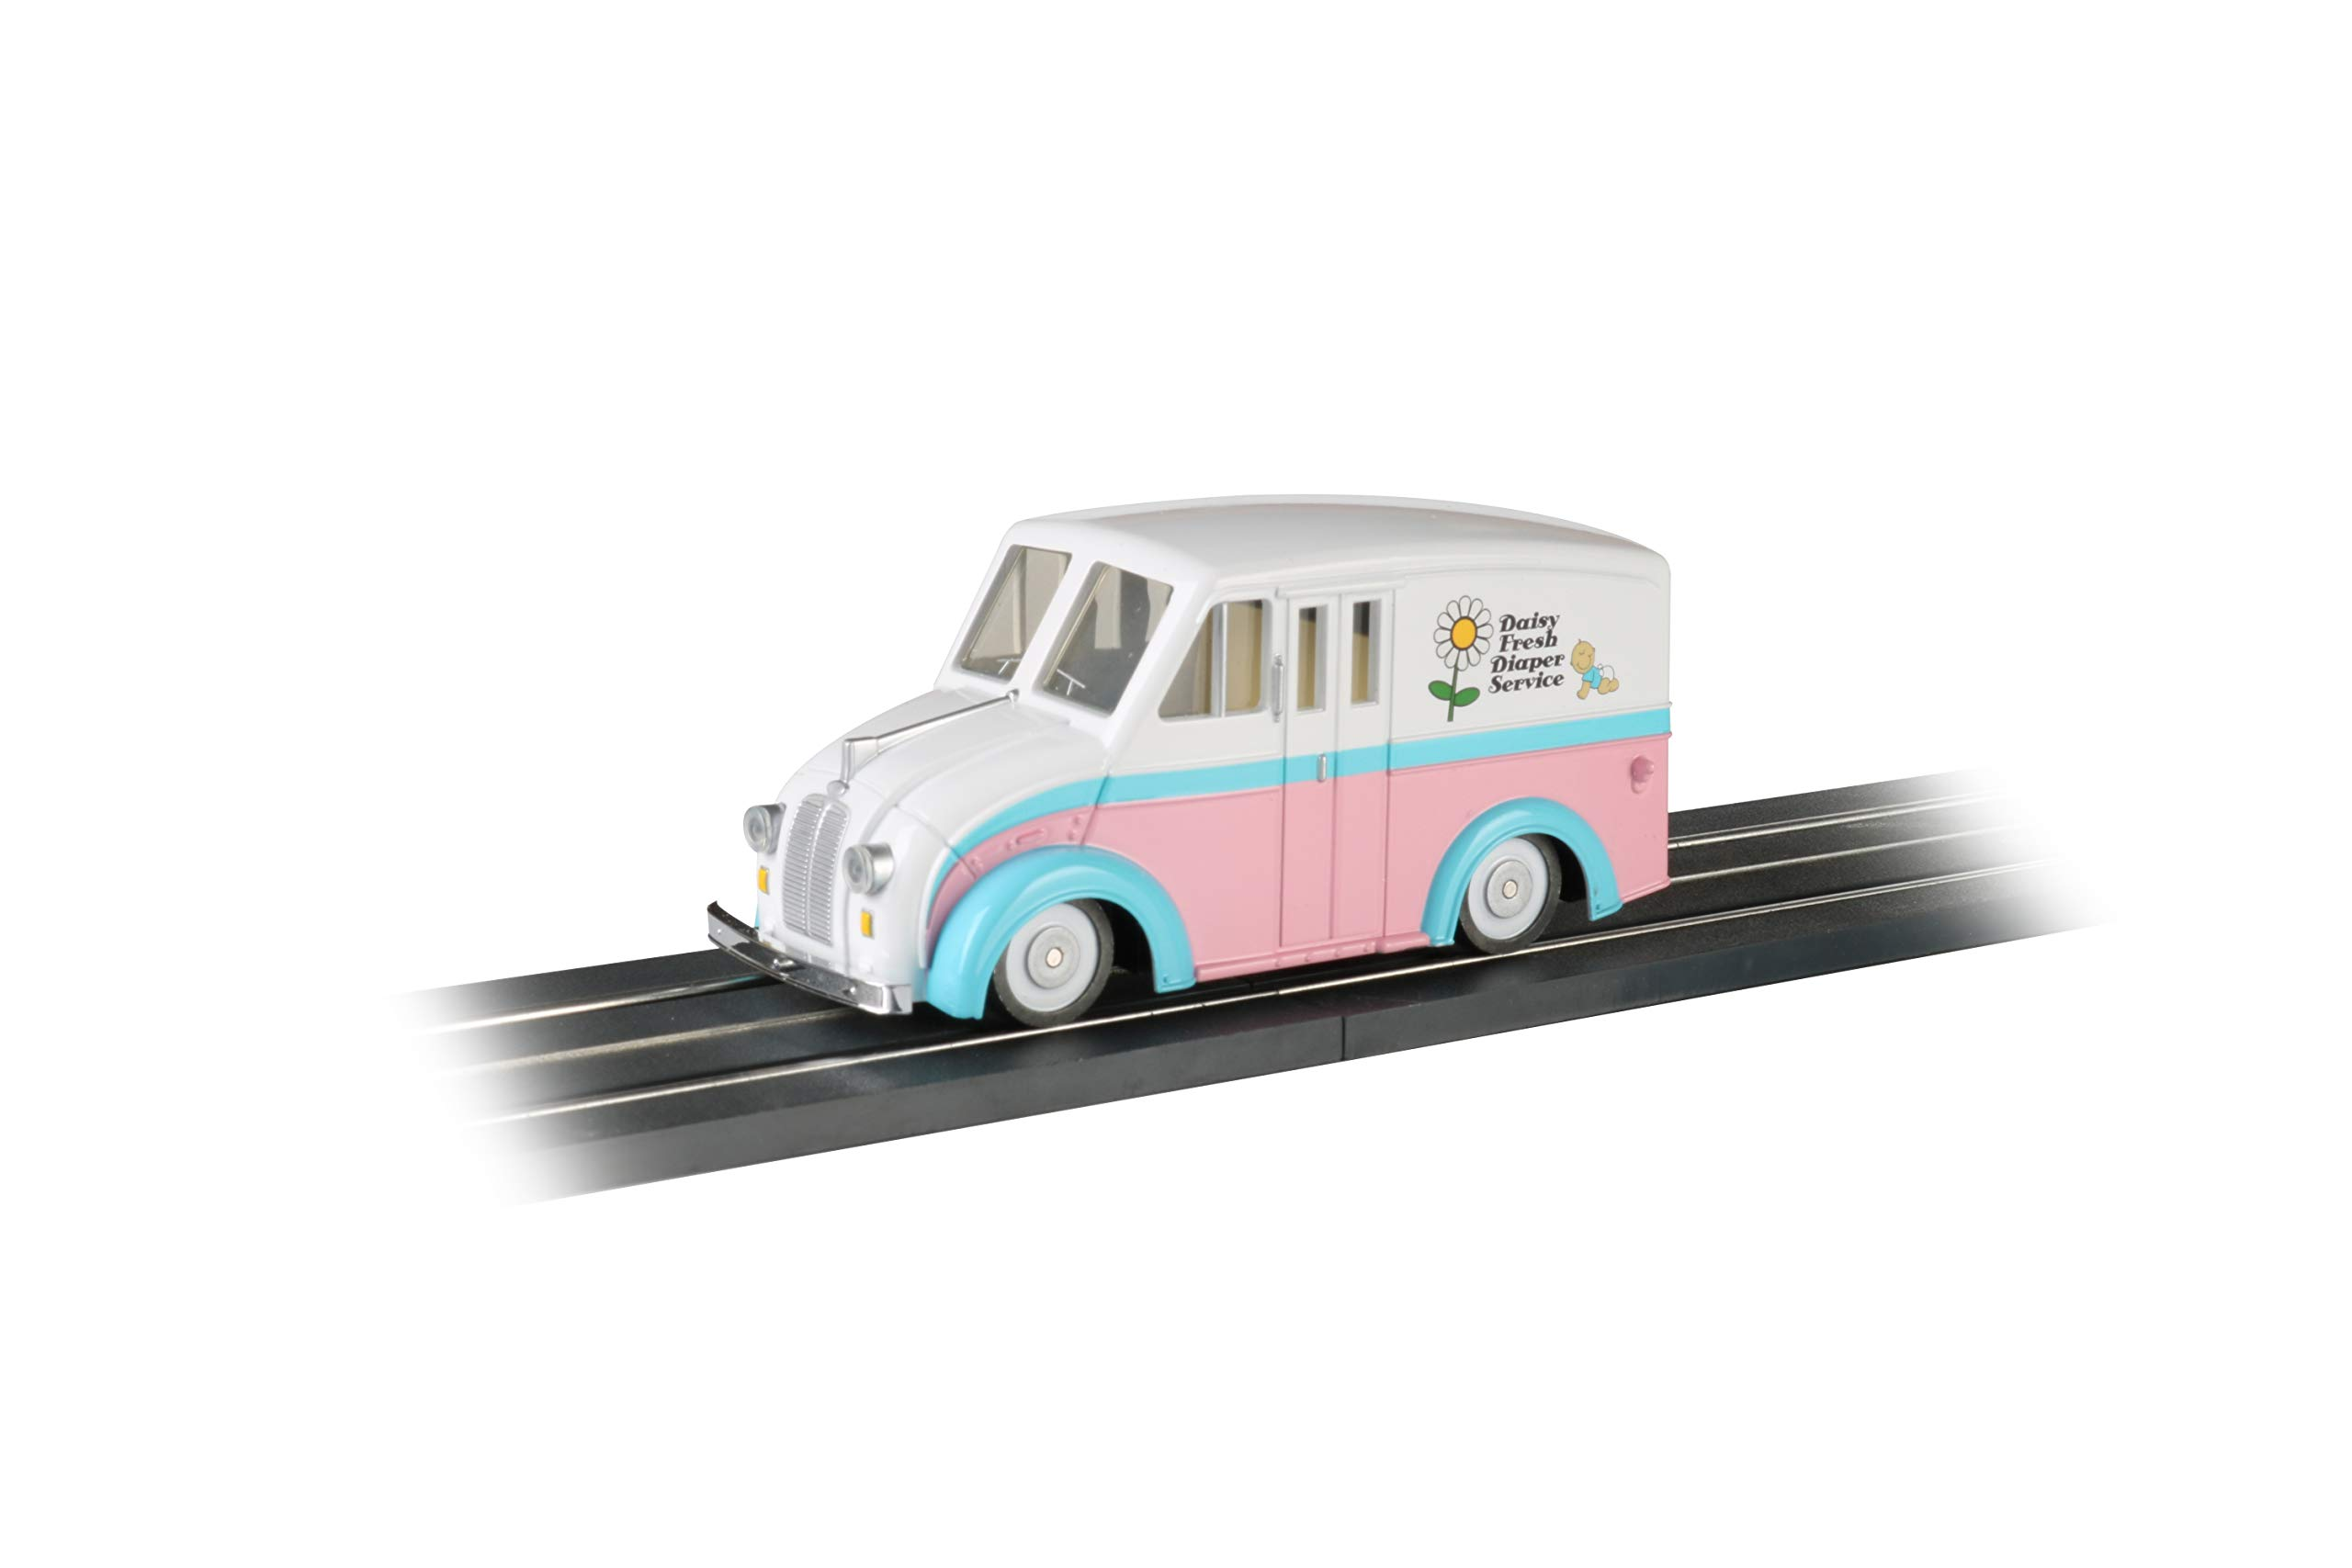 Bachmann Trains 42739 E-Z Street Vehicle - Delivery Van - Daisy Fresh Diaper Service - O Scale, Prototypical Colors